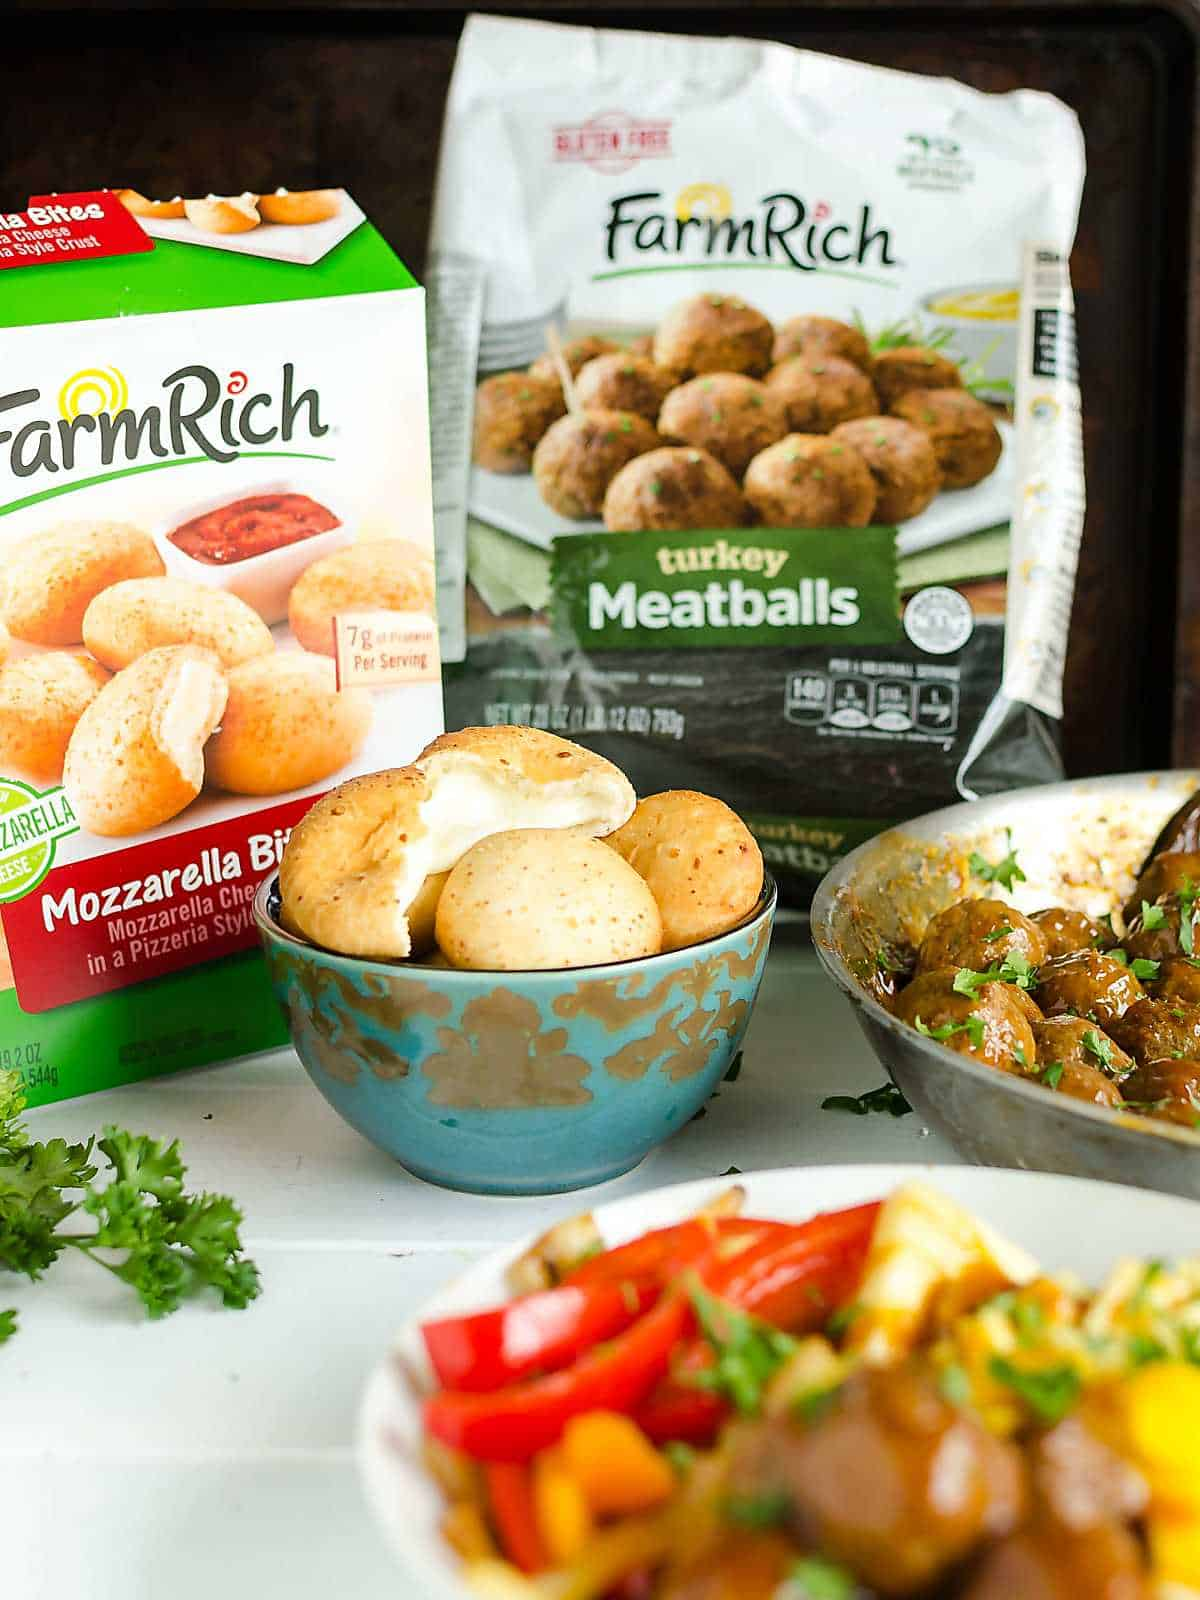 Farm Rich meatballs and mozzarella bites for quick dinner solutions